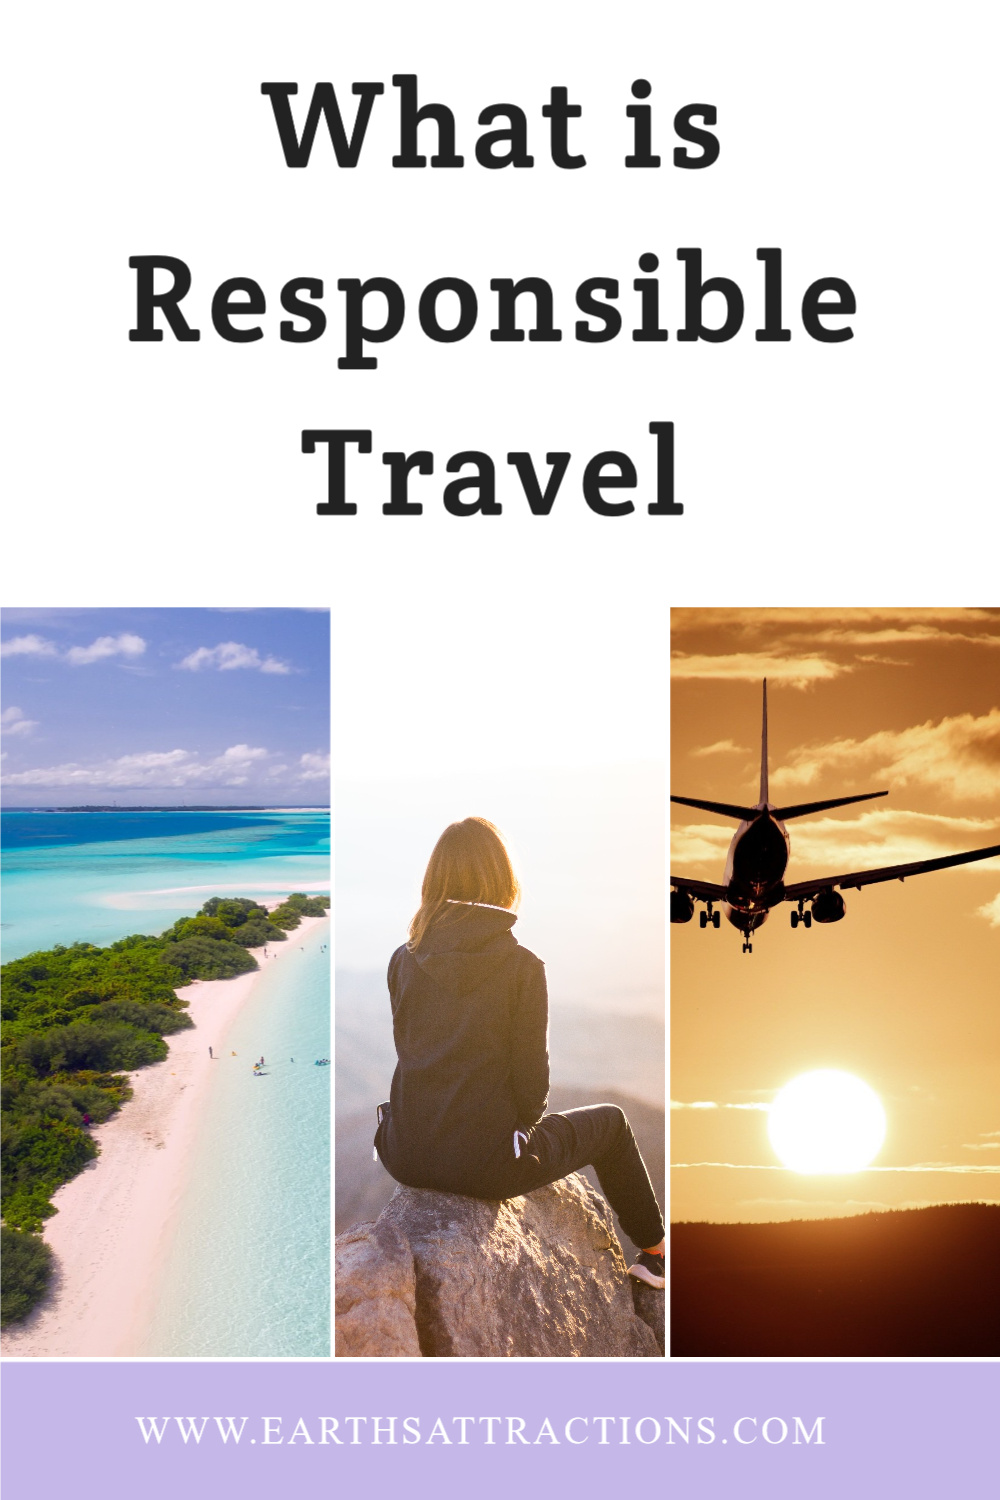 What is responsible travel and how to be a responsible traveler. Discover 15 things to avoid while traveling so that you can be a respectful traveler! How to travel responsibly. #travel #traveltips #earthsattractions #responsibletravel #responsibletraveler #responsibletraveling